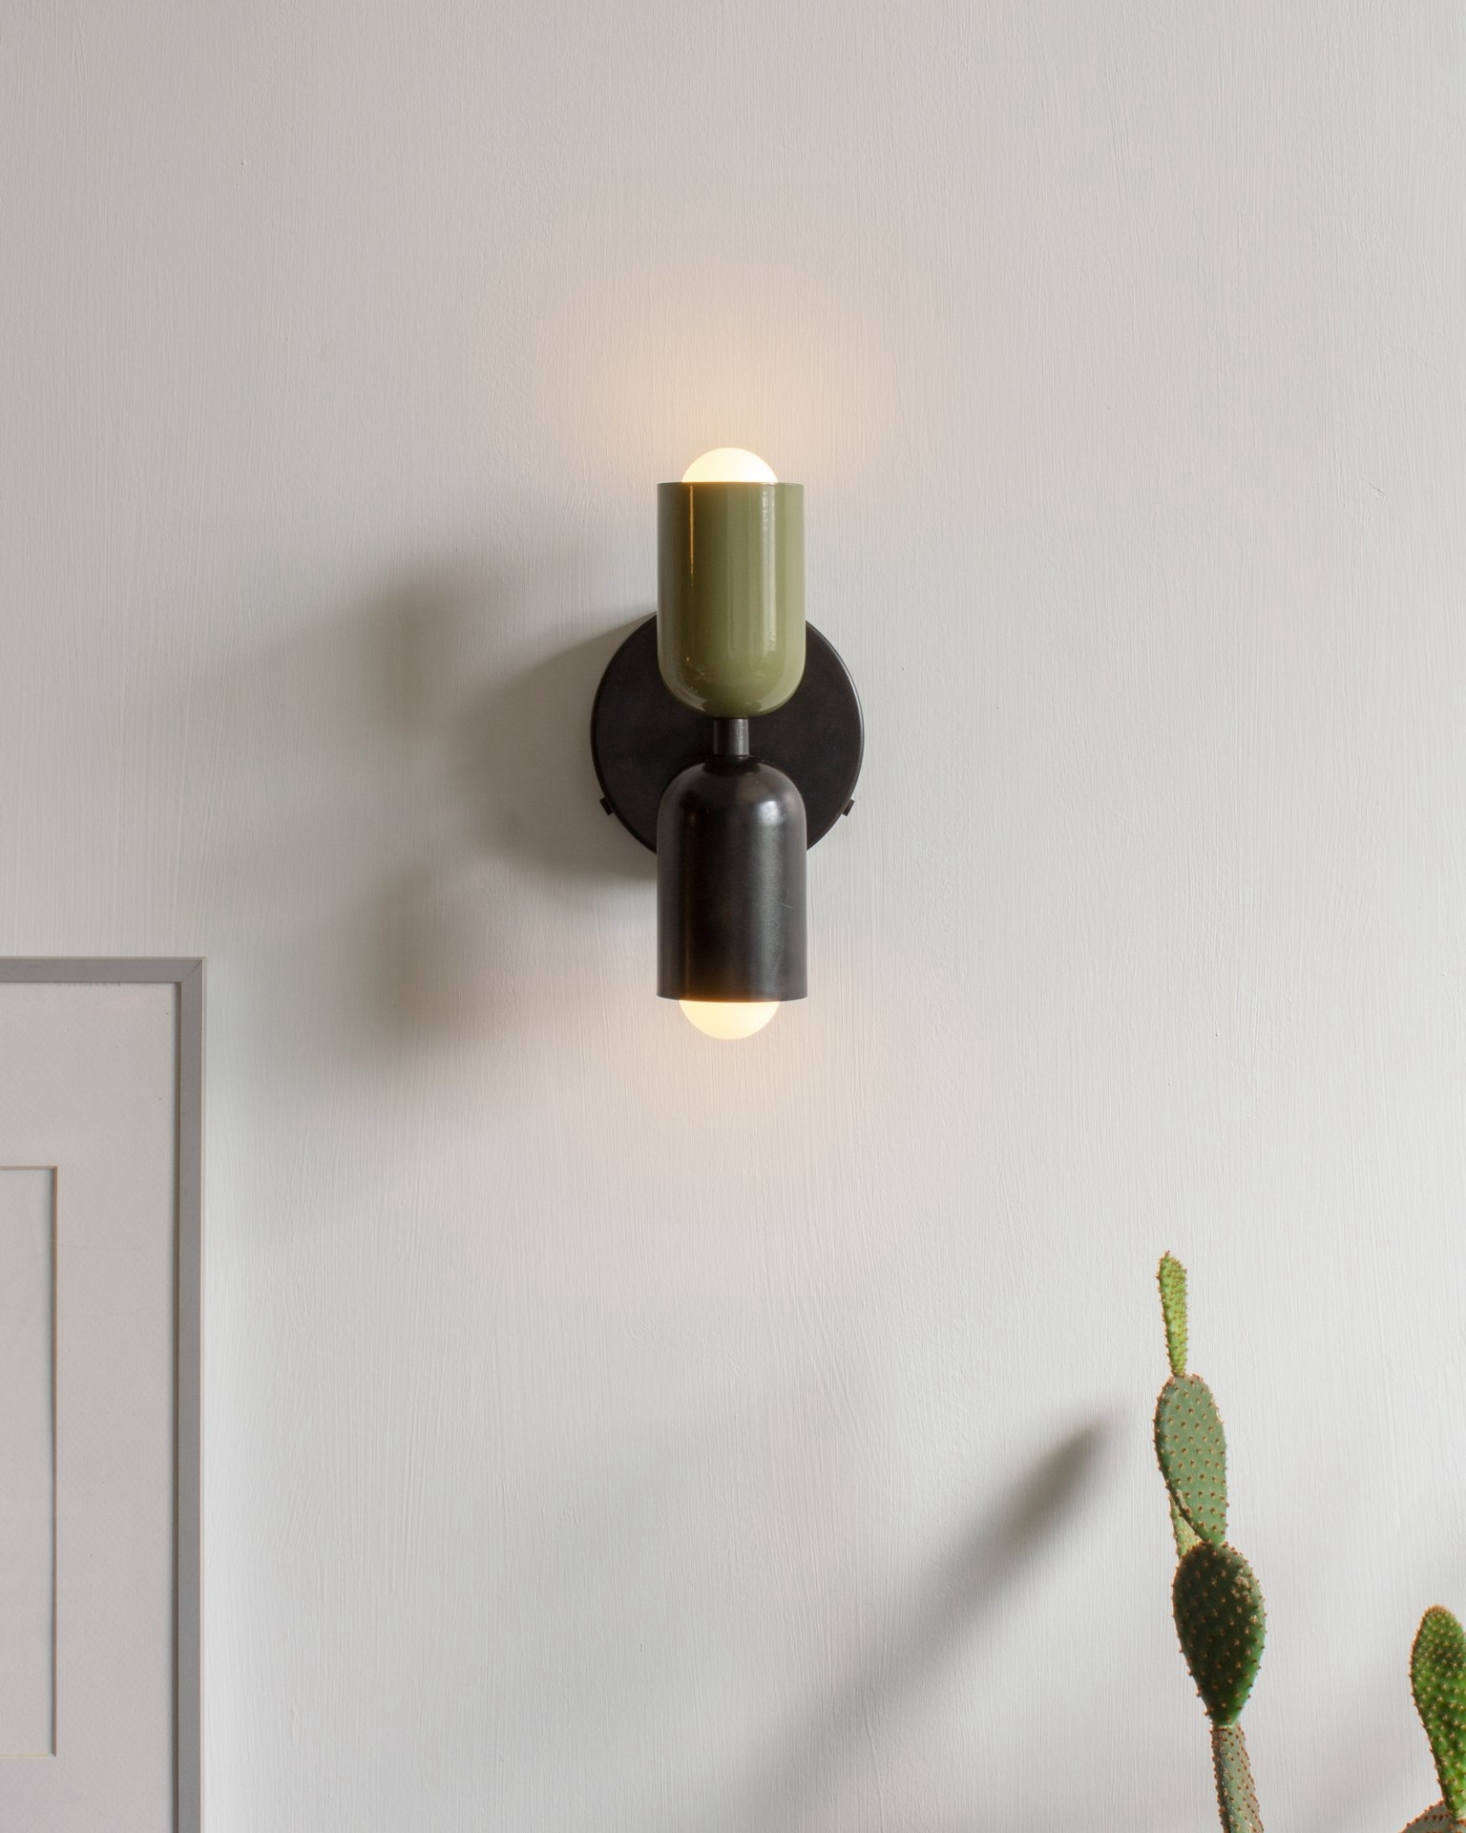 The Up Down Sconce with a Reed Green top shade and Black bottom shade. The light is 4 7/8 in wide by 9 5/8 in tall and is available hardwired or with a plug-in cord.